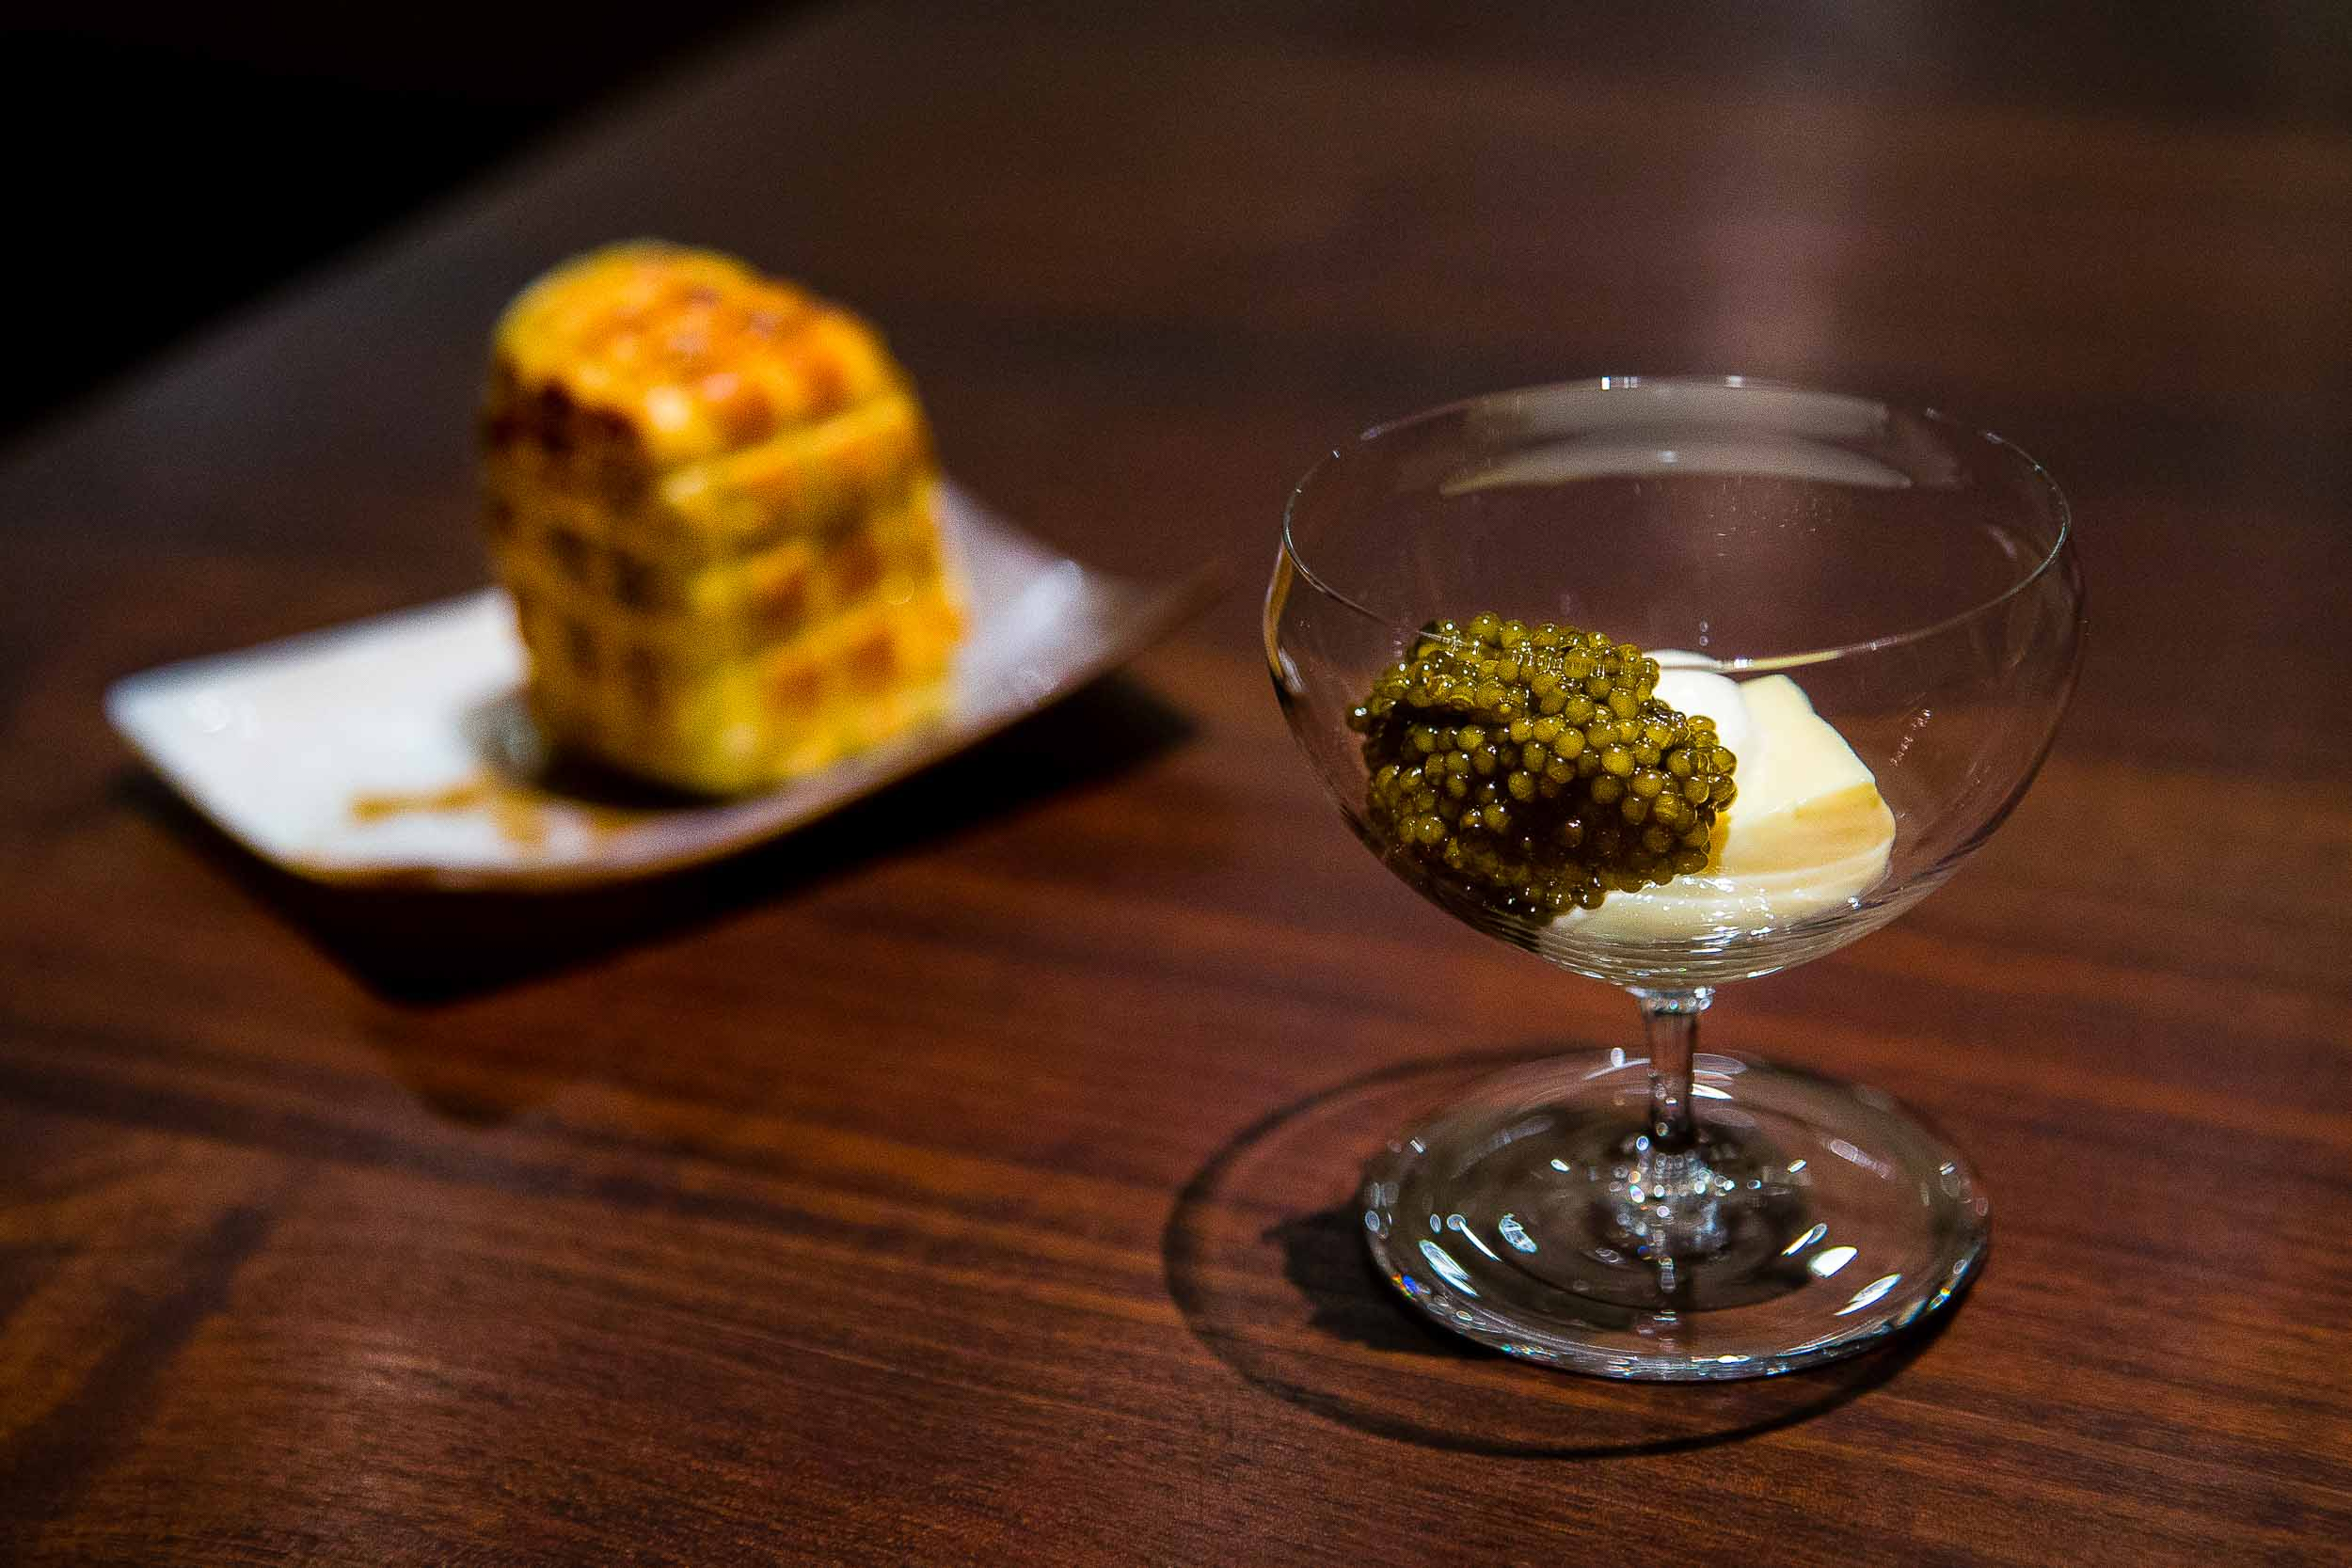 Egg custard, red hock cheese, and golden Osetra caviar with a Parker House roll brushed in olive oil and grilled over the fire.